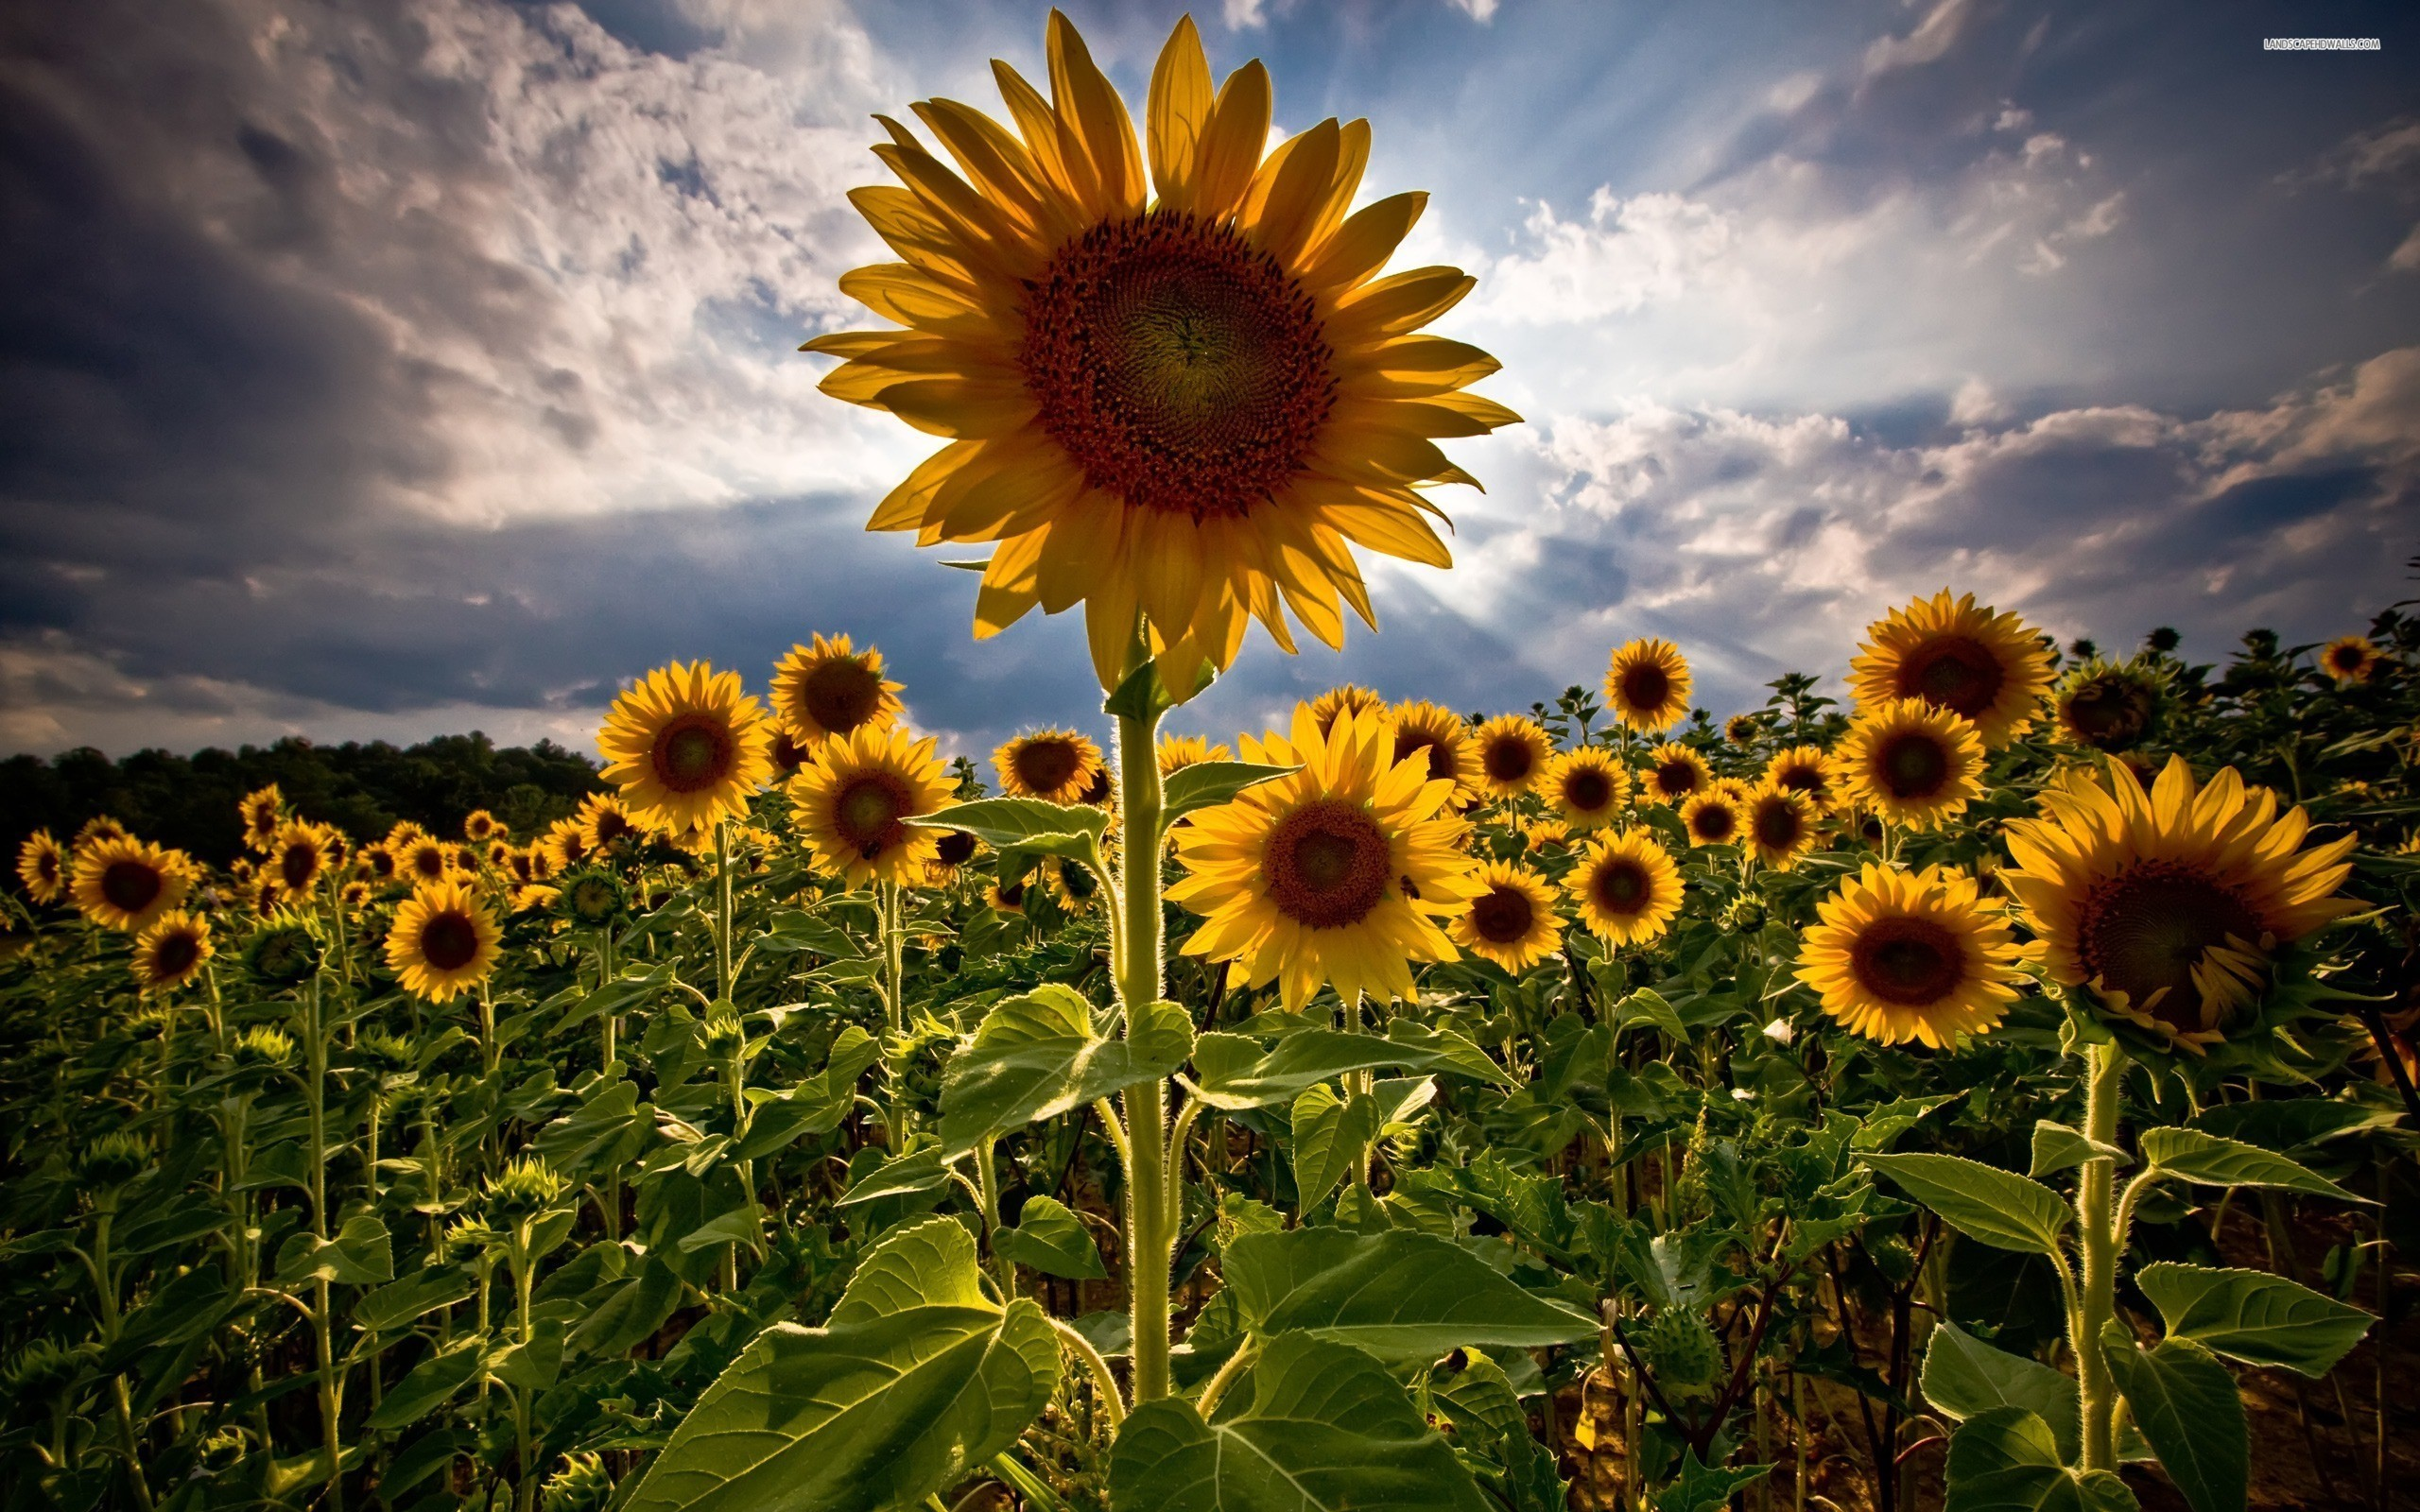 sunflower-field-515-2560x1600